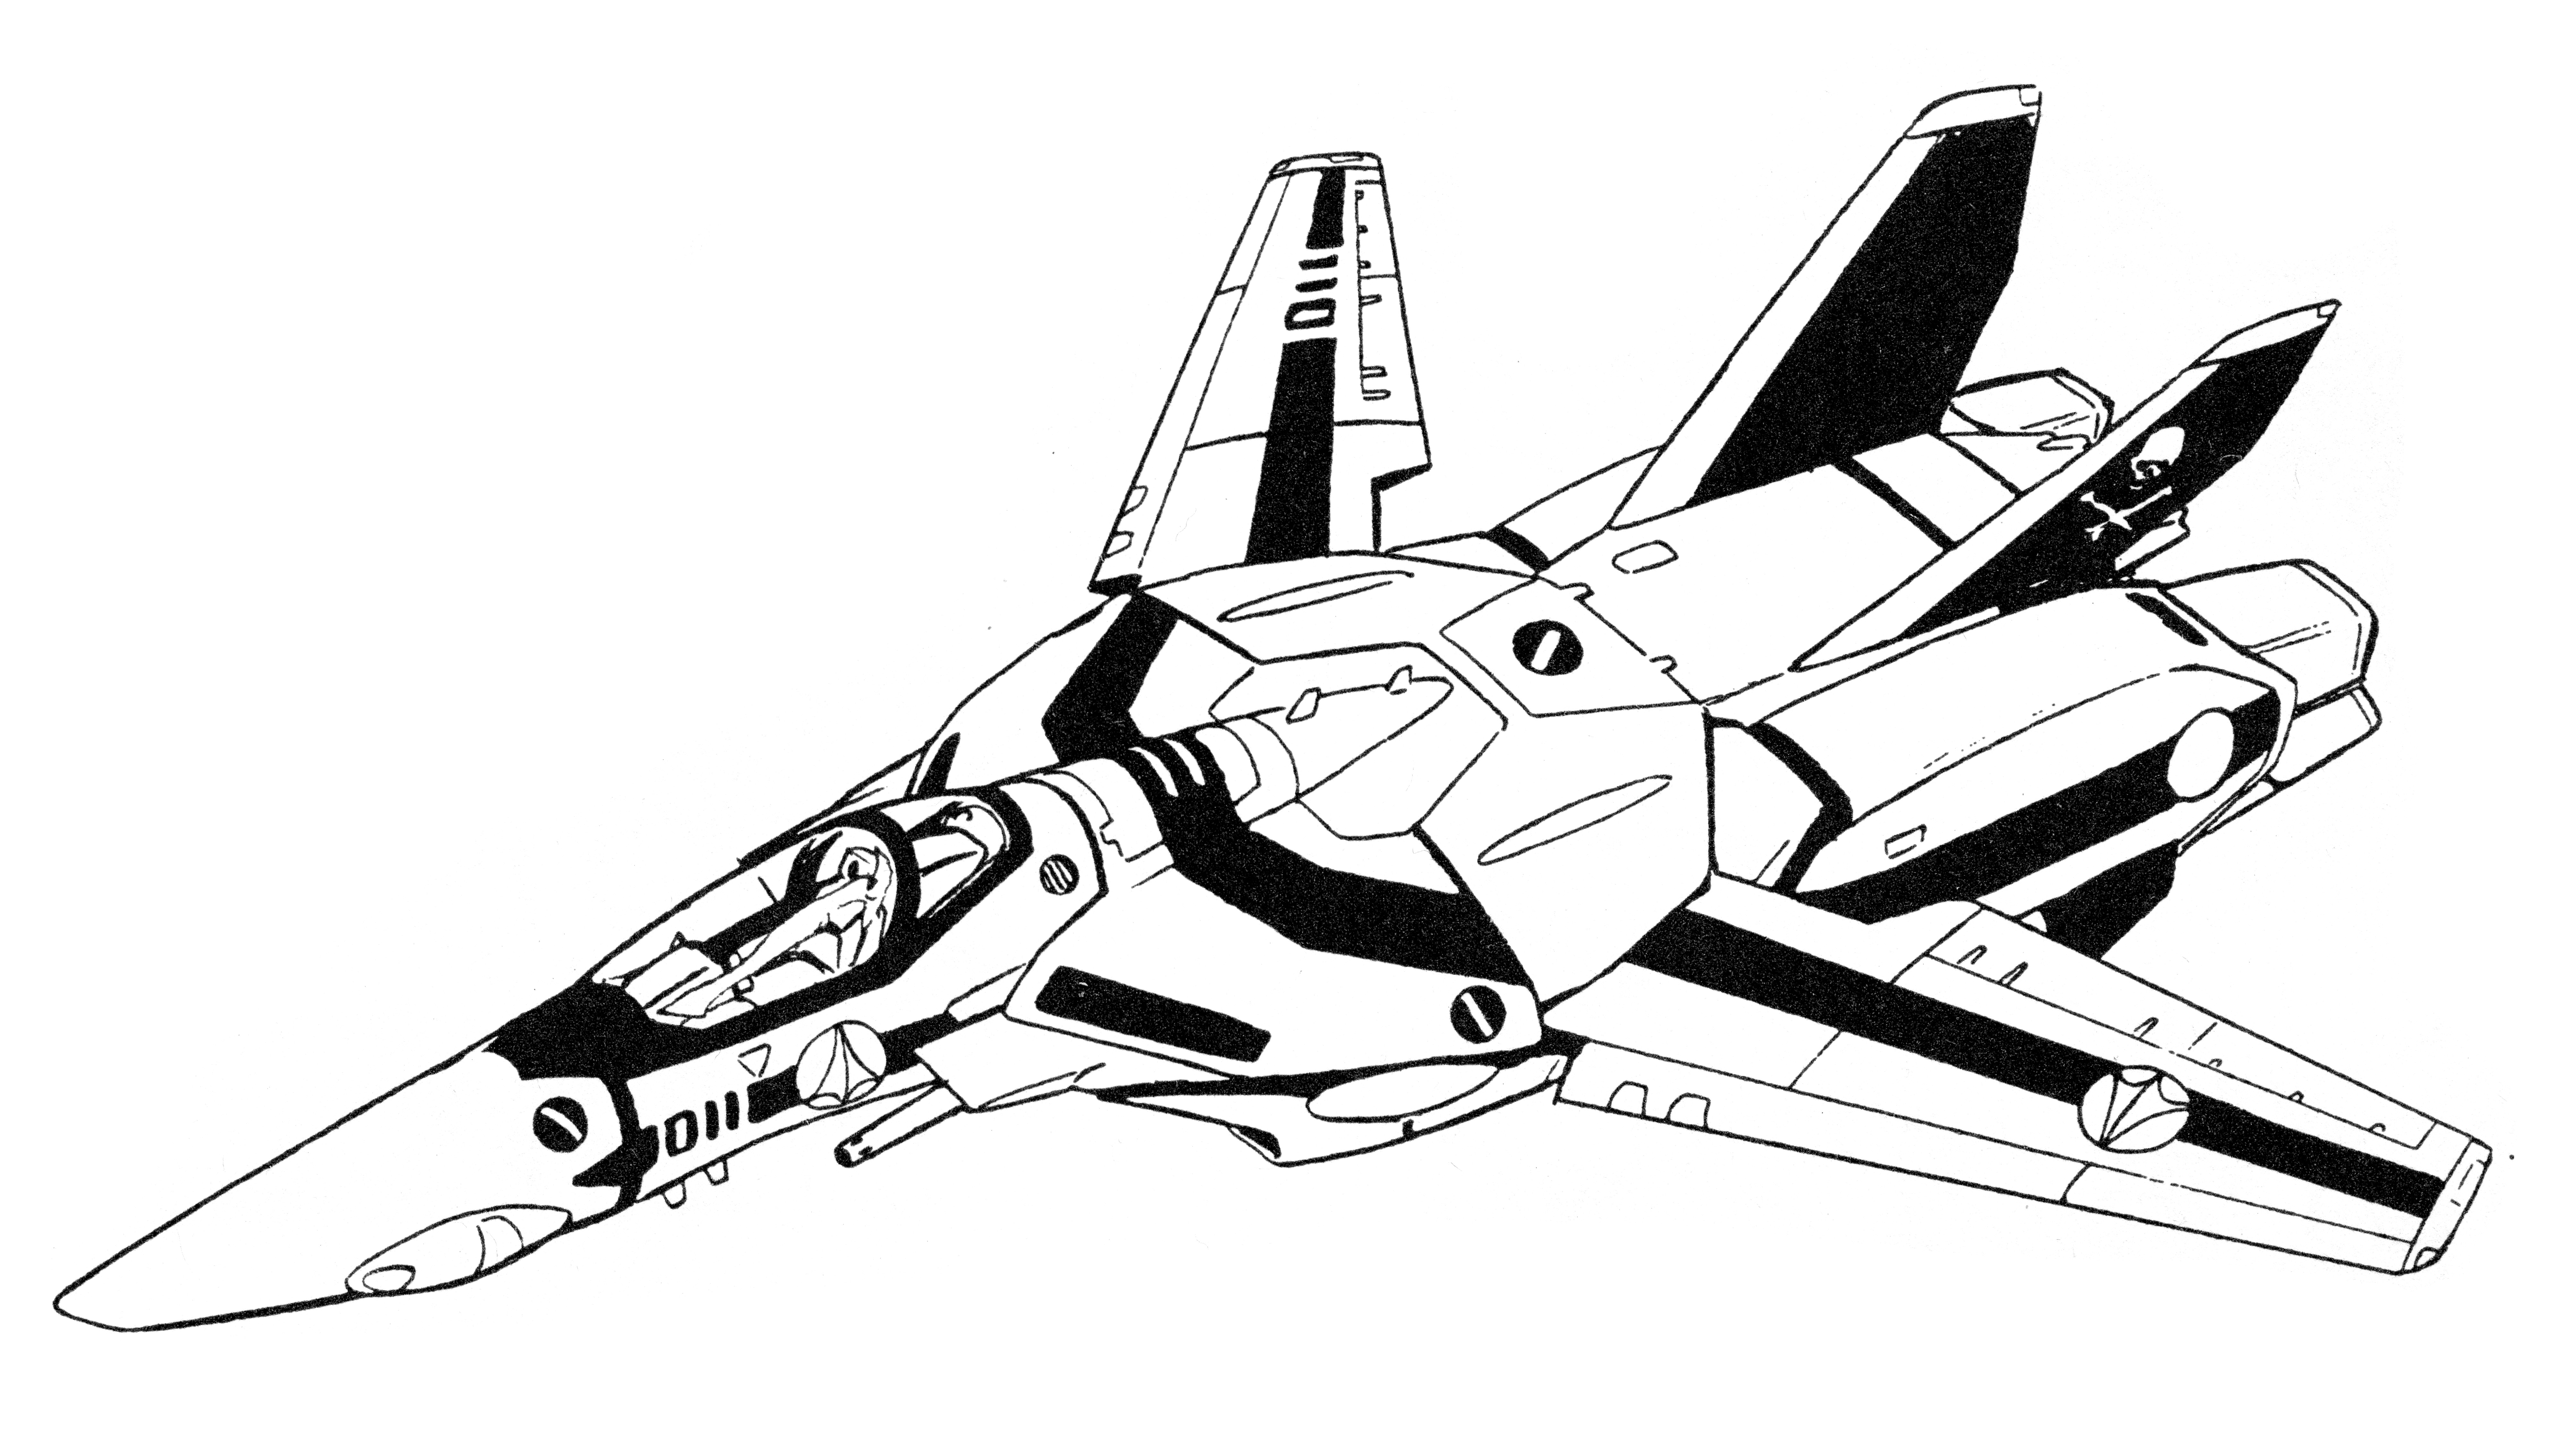 VF-1N Valkyrie Fighter 1